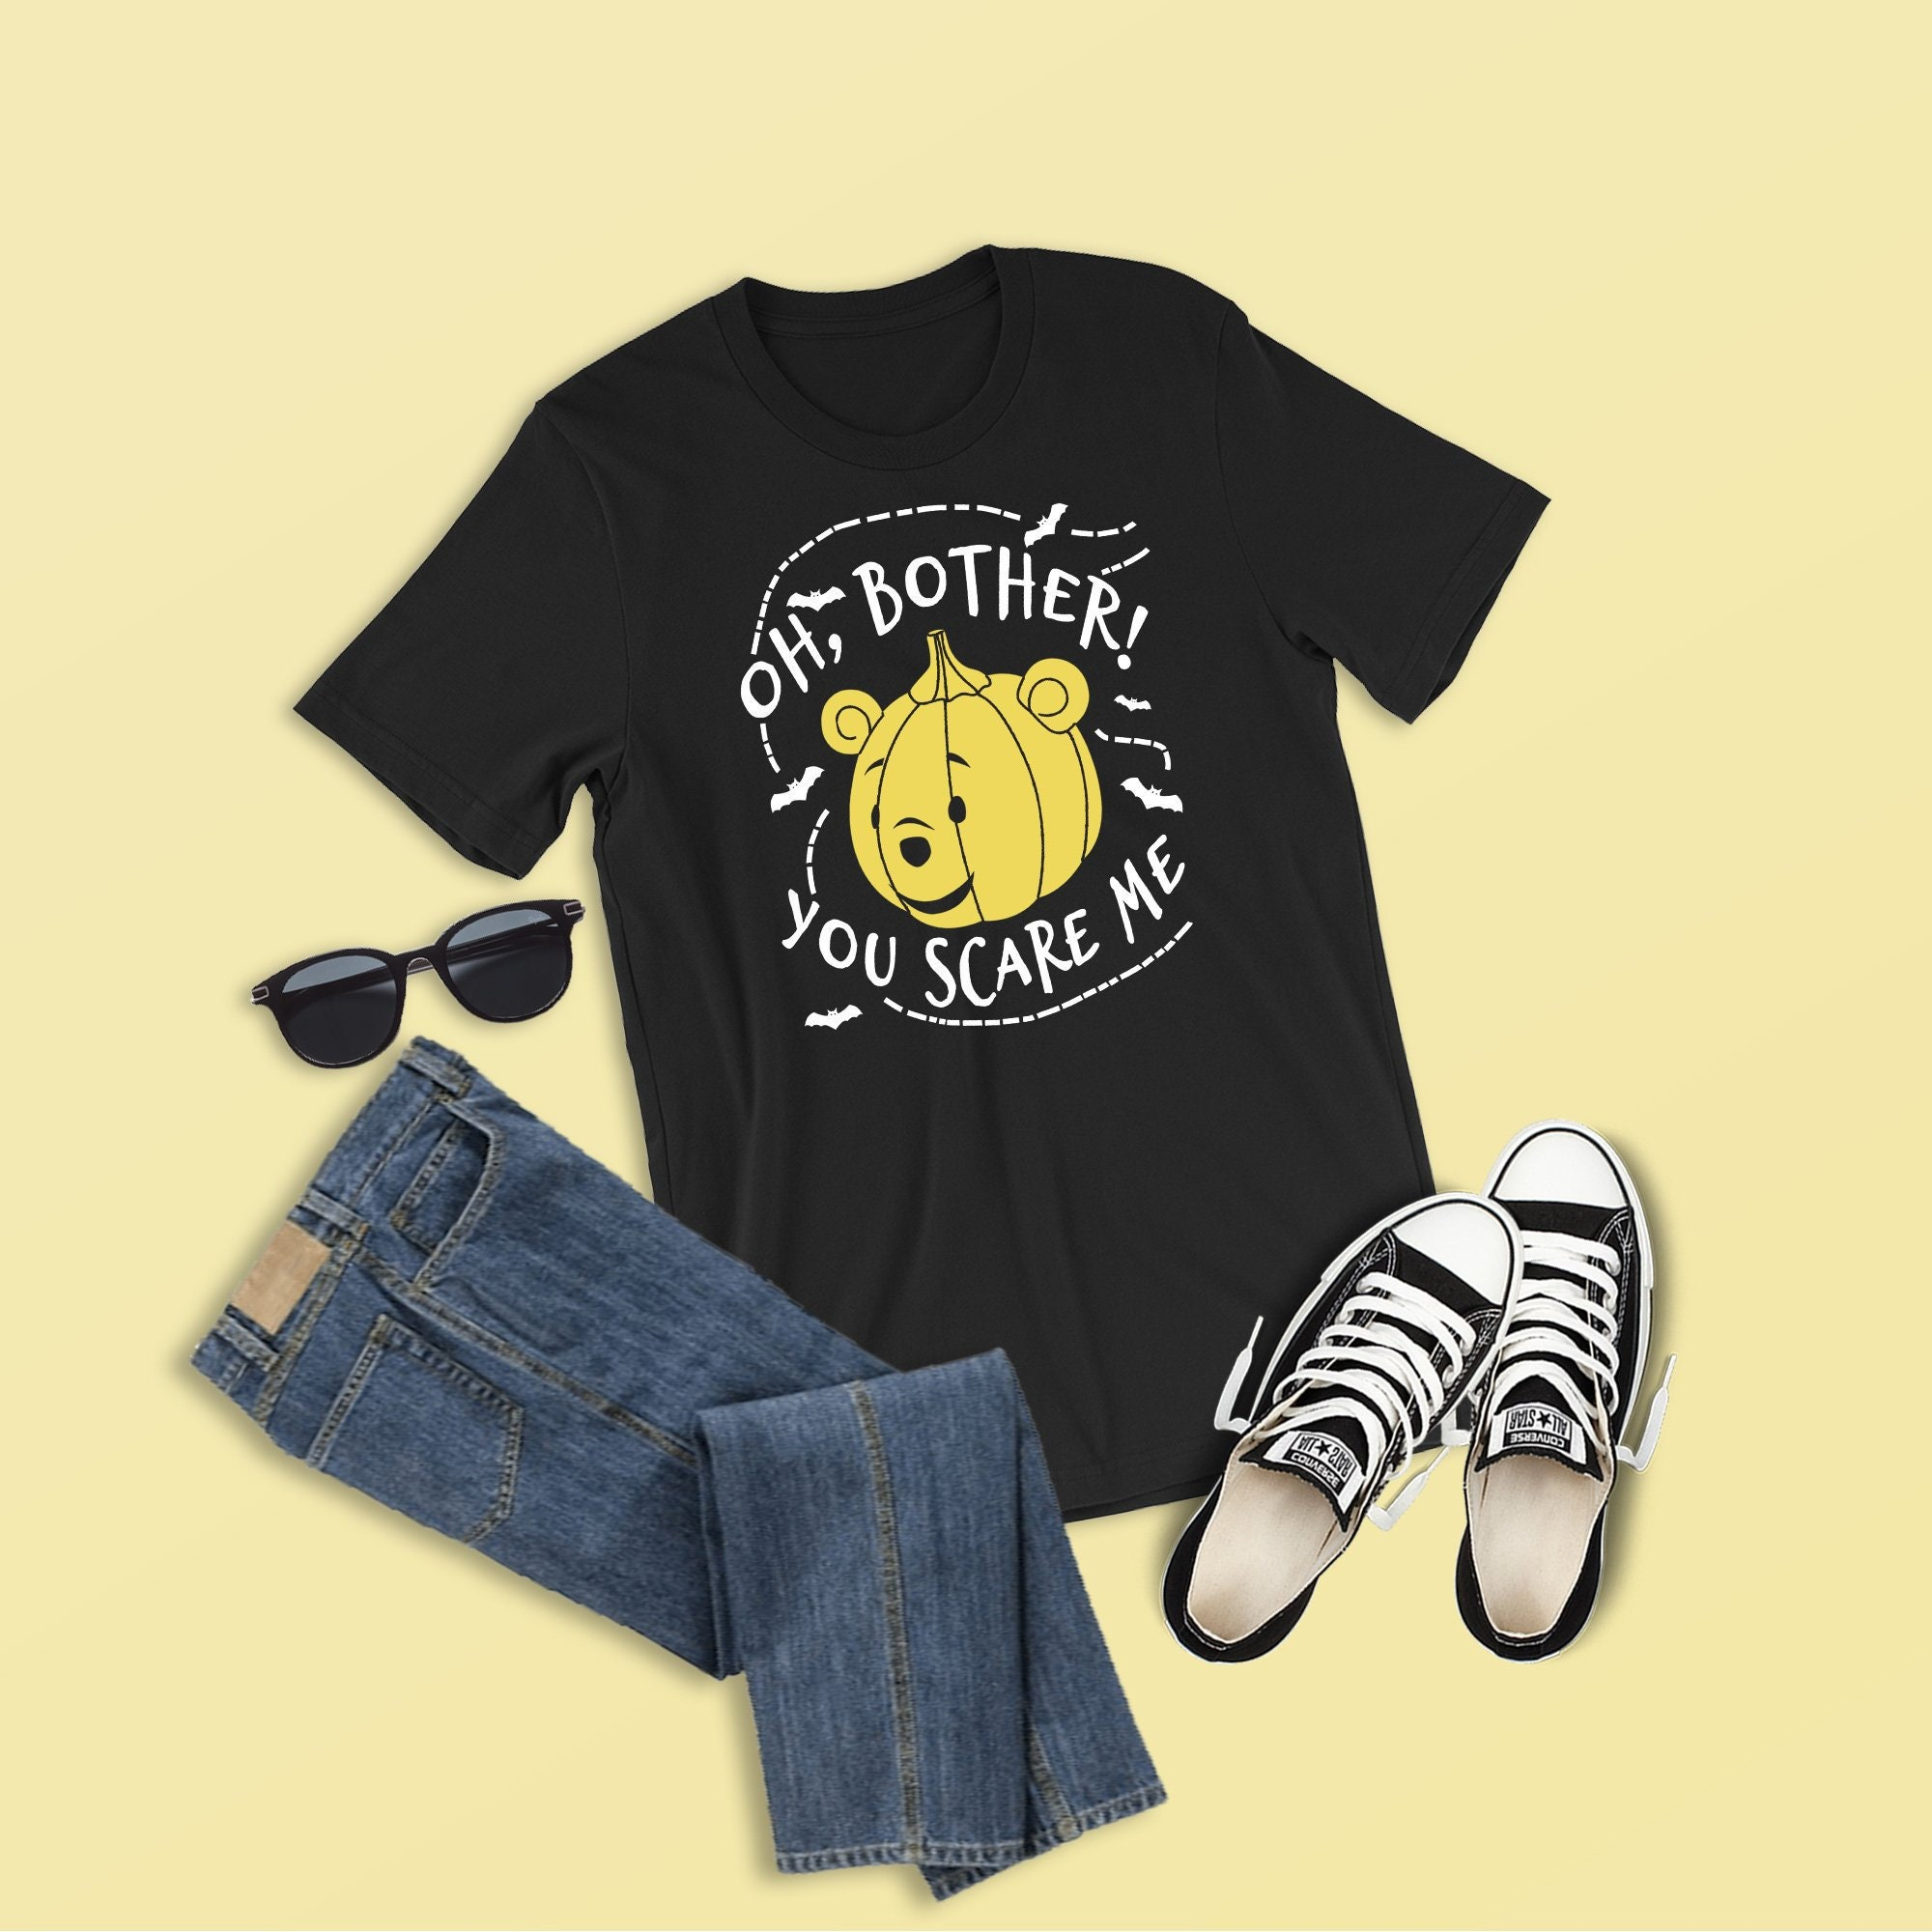 5dad1f9f4fbb Oh Bother You Scare Me Shirt Pooh Shirt Winnie the Pooh